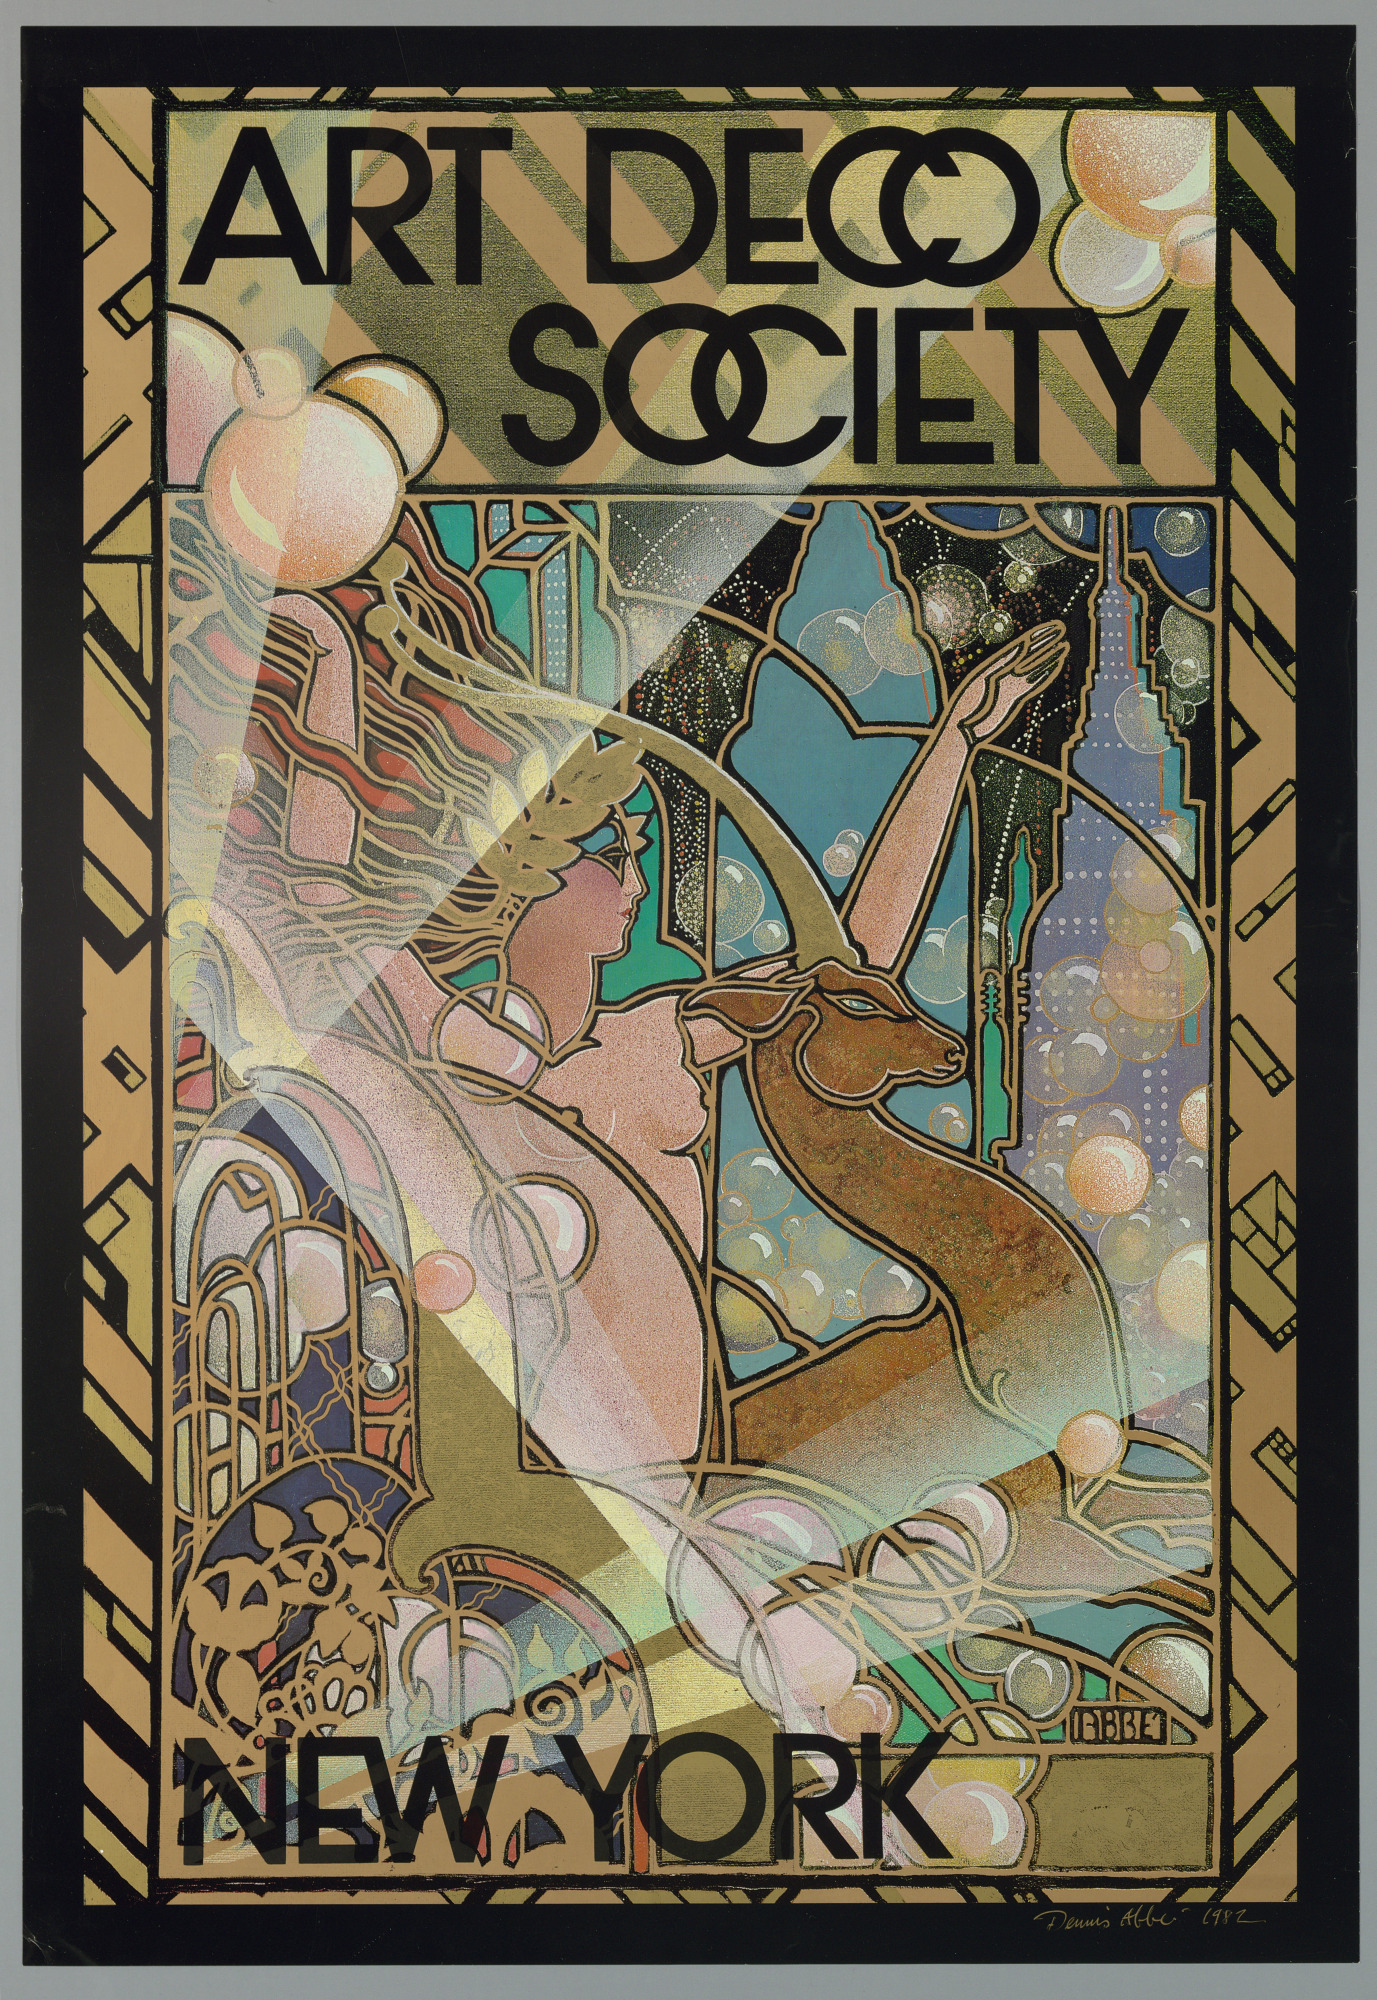 Art Deco Society (artist/